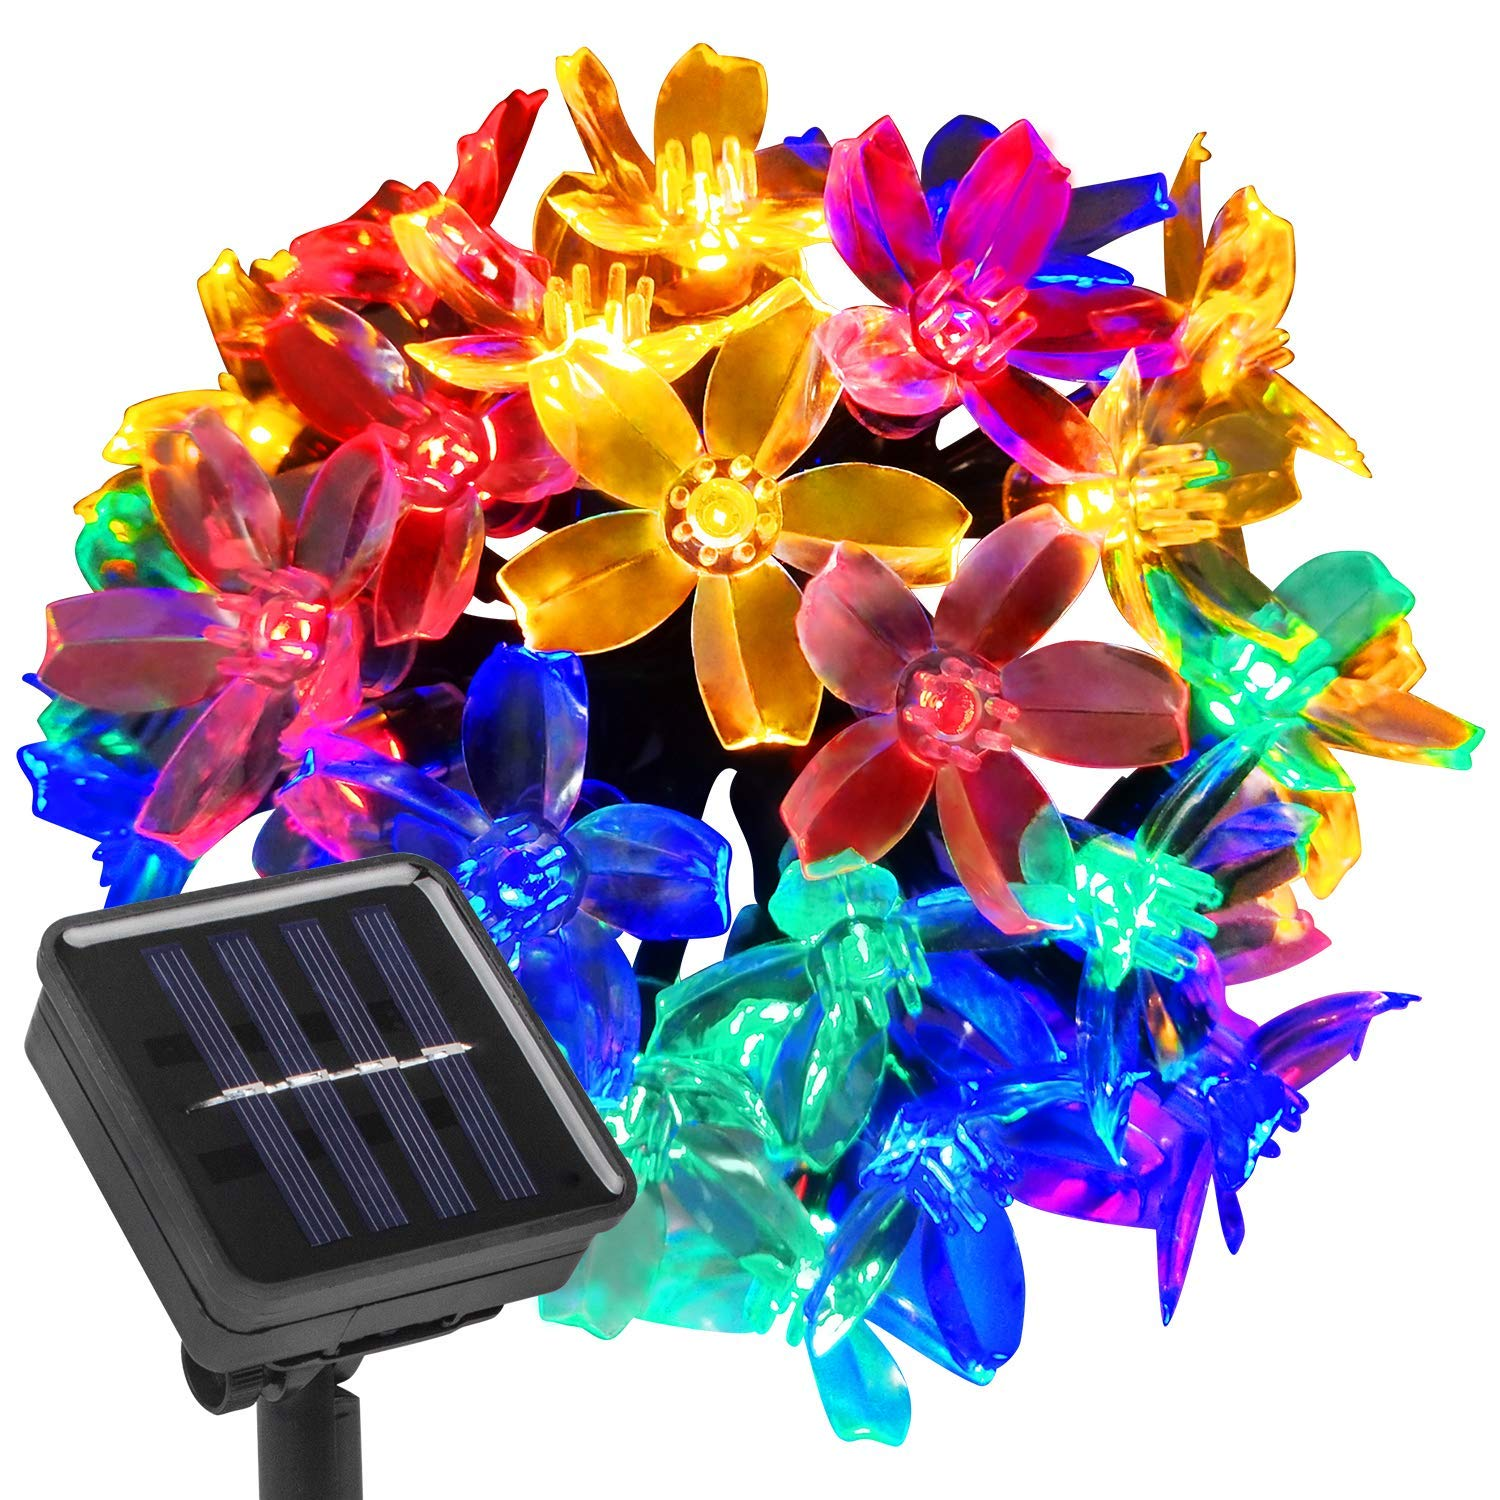 Beinhome Solar String Lights Outdoor, 21.3 Feet 30 LEDs Waterproof Flower Solar Fairy Lights - 8 Modes Multi Color Shining LED Solar Lights Outdoor Garden Patio Fence Roof Tree Christmas Decoration